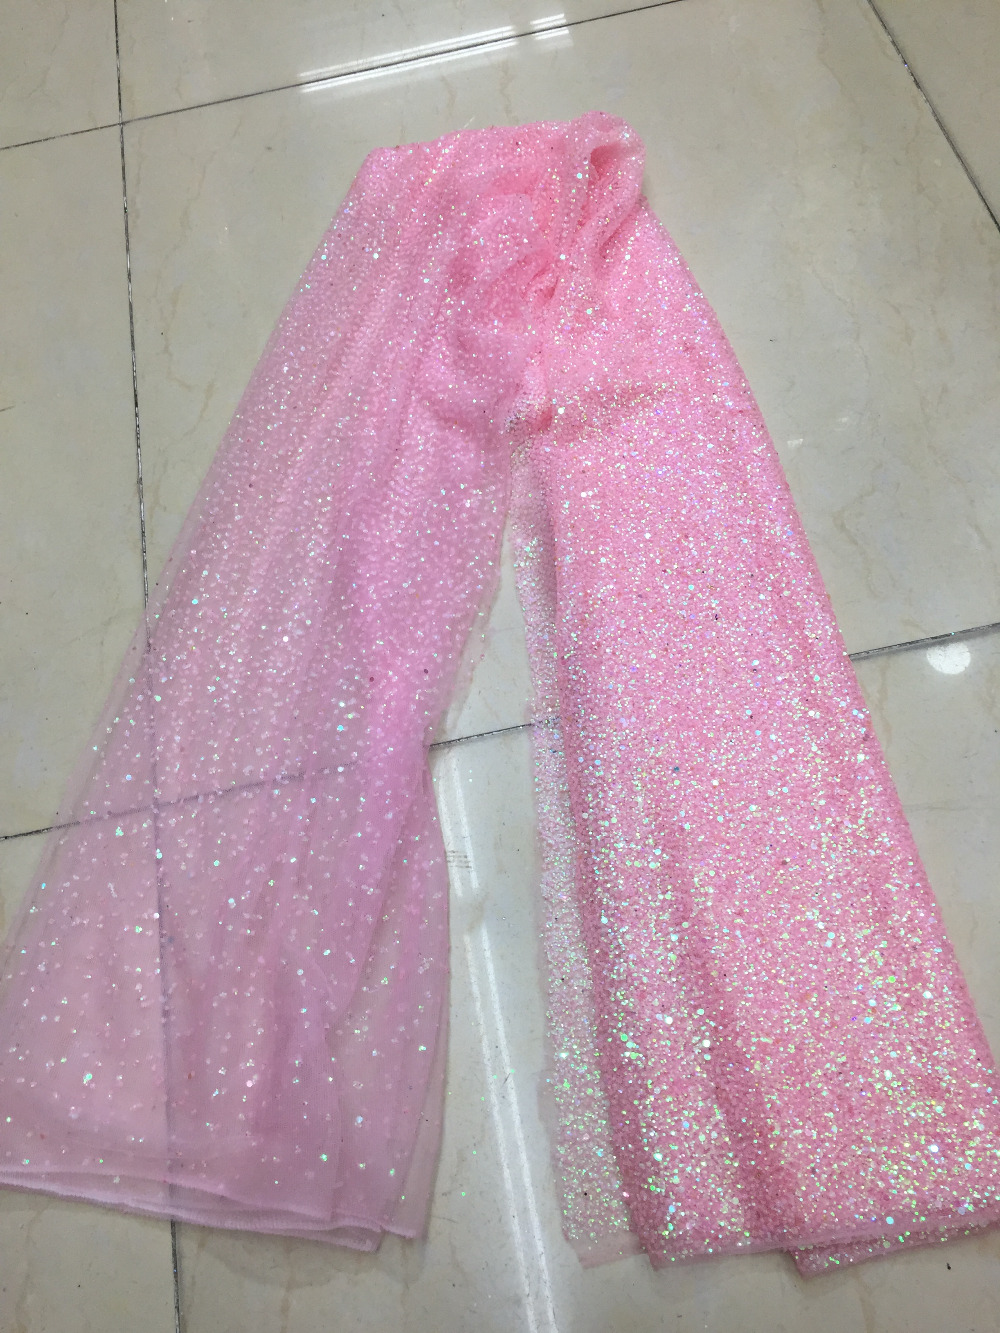 Aliexpress.com   Buy 5 yards bzh0014 pink dot dobby glued sparkle glitter  mesh net tulle lace fabric for sawing  evening dress from Reliable fabric  for ... 5198c8d10ac0